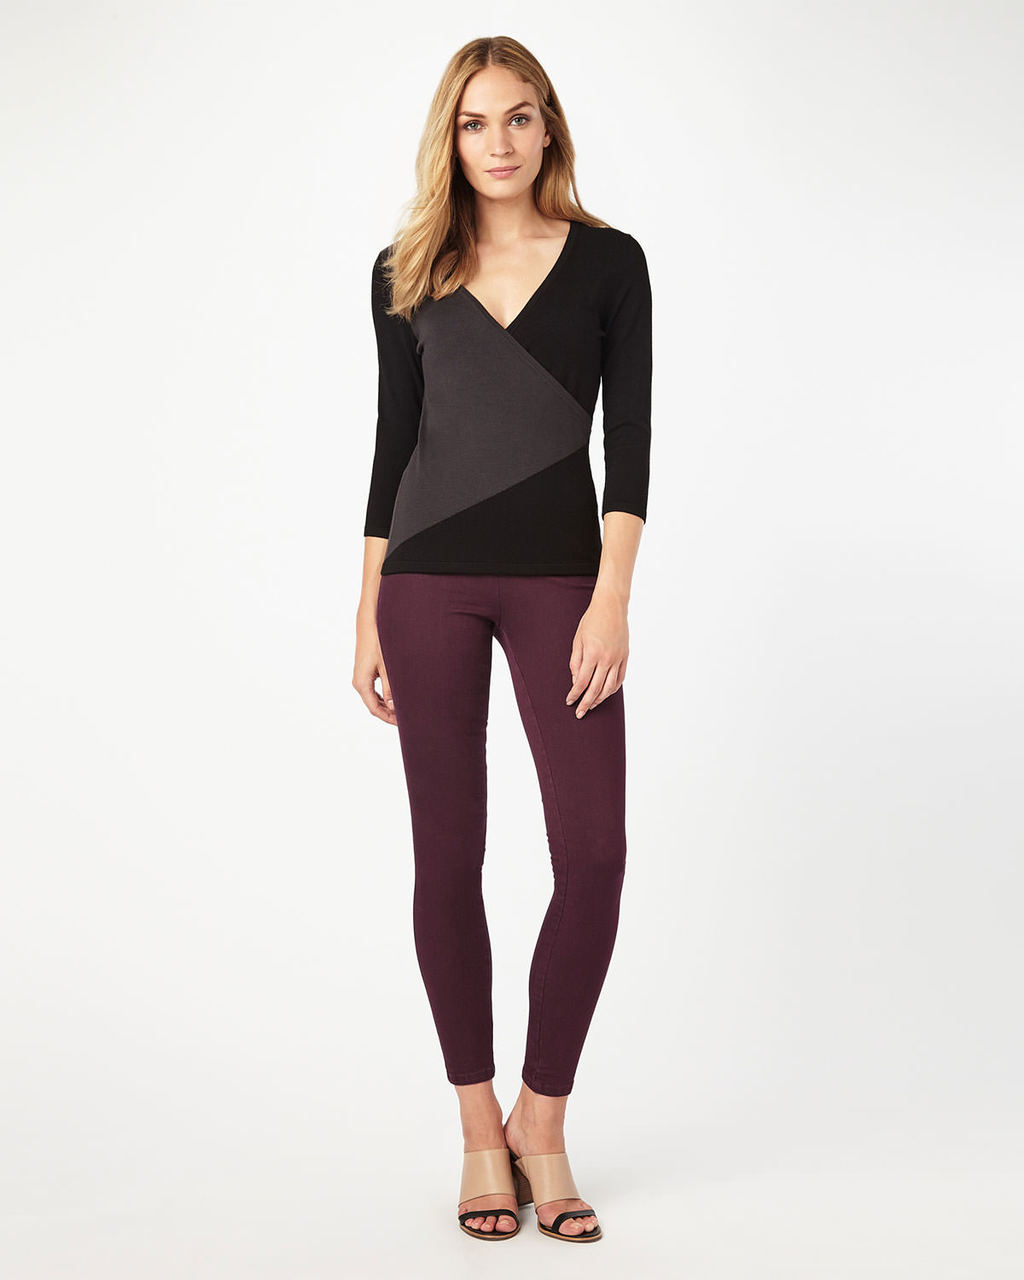 Amina Darted Jegging - style: skinny leg; length: standard; pattern: plain; pocket detail: traditional 5 pocket; waist: mid/regular rise; predominant colour: burgundy; occasions: casual, creative work; fibres: cotton - stretch; texture group: denim; pattern type: fabric; season: a/w 2016; wardrobe: highlight